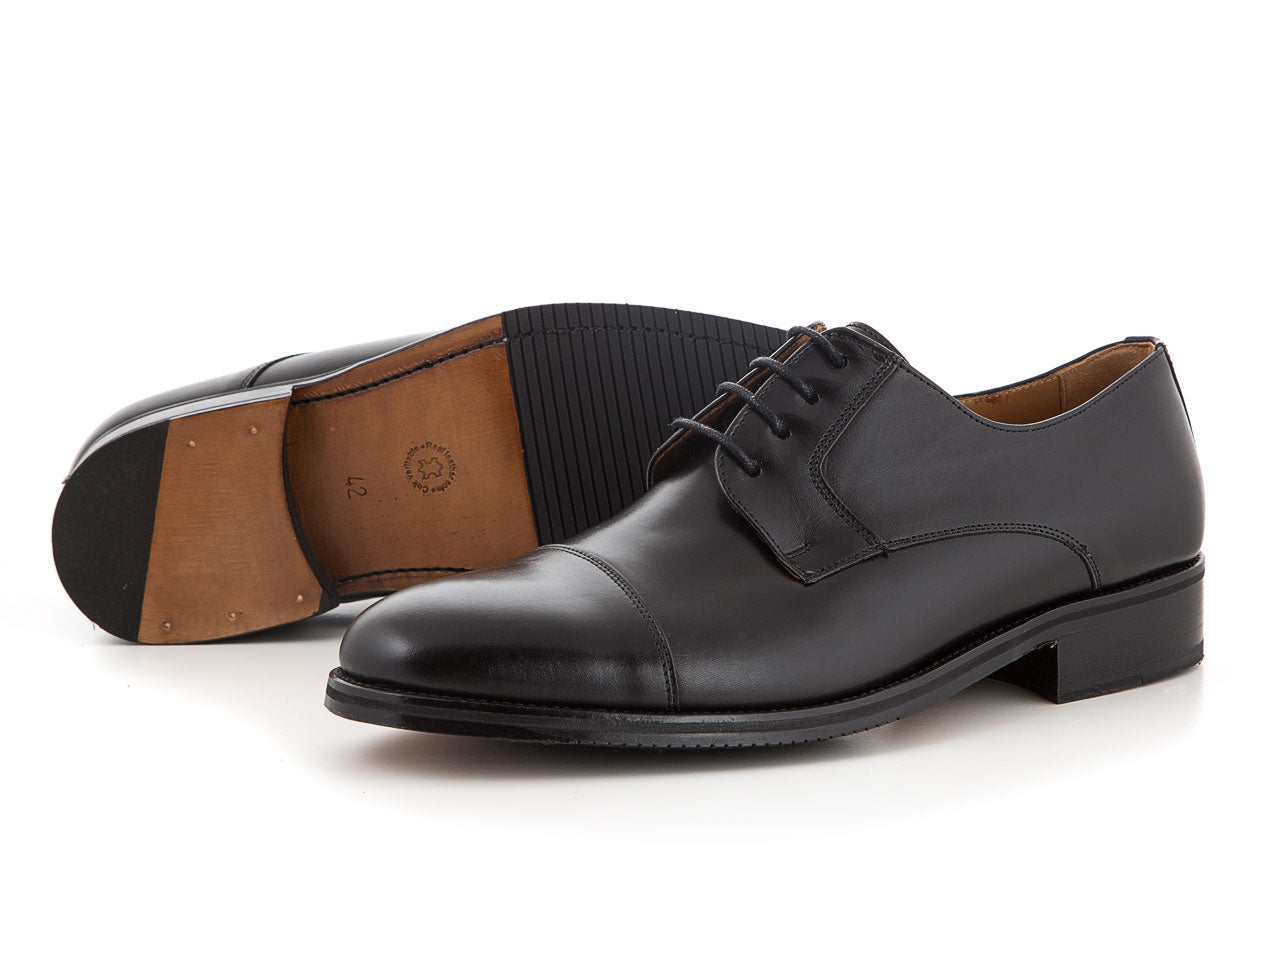 Handmade leather business shoes all black suit | camino71